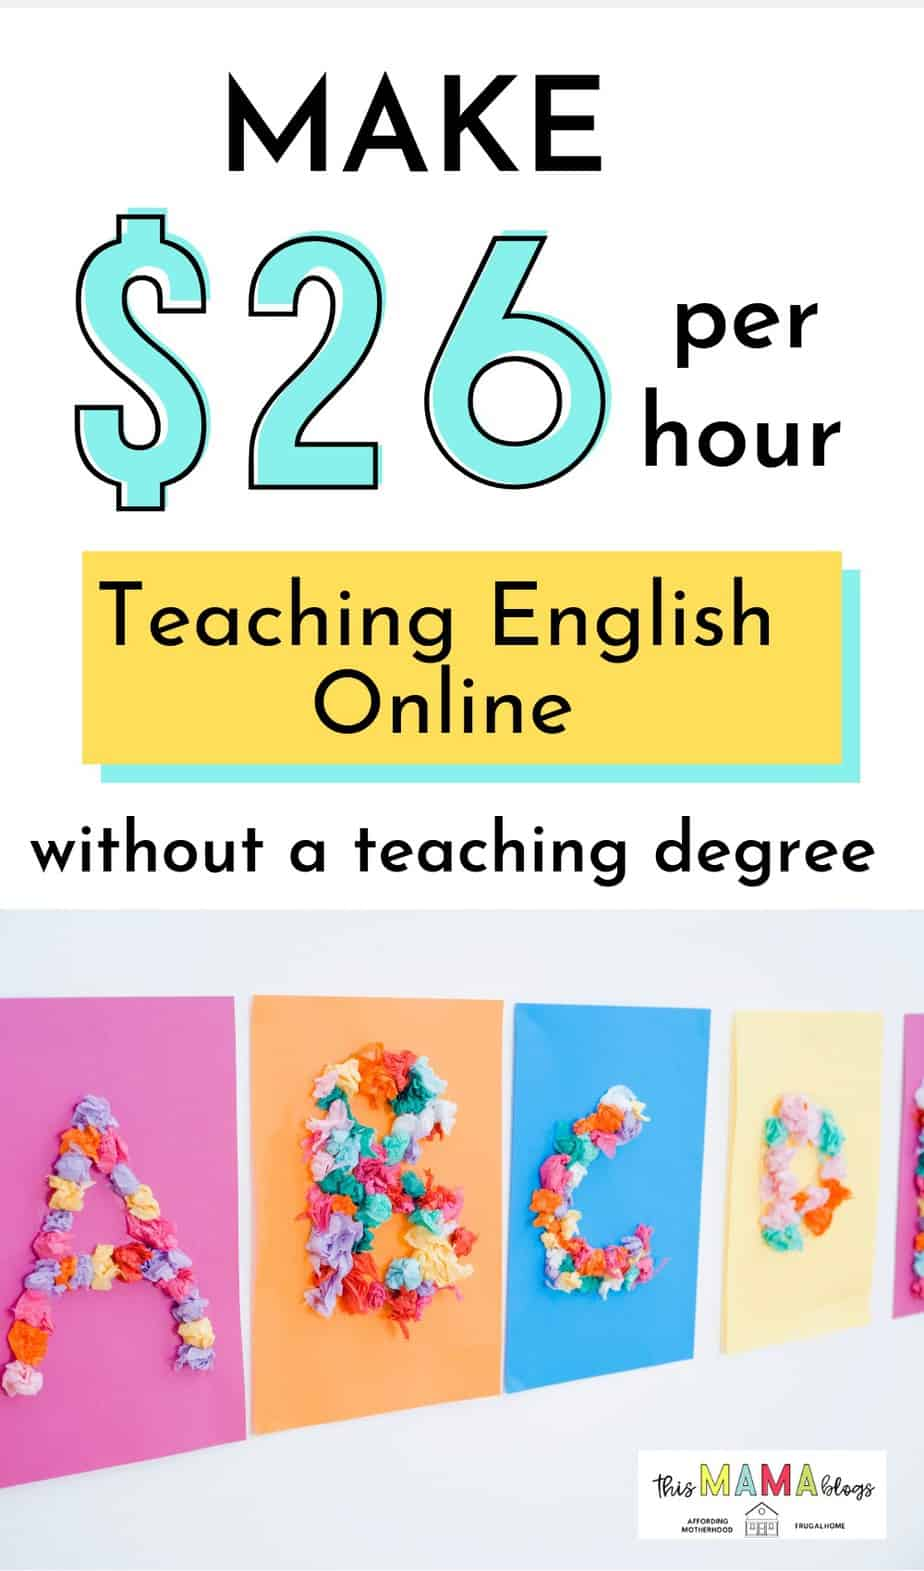 Teaching English online is a great side hustle for moms. If you are looking for a work at home job to make money from home while looking after your kids, working as an English teacher is one of the best options for you that can potentially earn you a full-time income. Read more via This Mama Blogs on how to get started! #makemoneyfromhome #makemoneyonline #sidehustlesathome